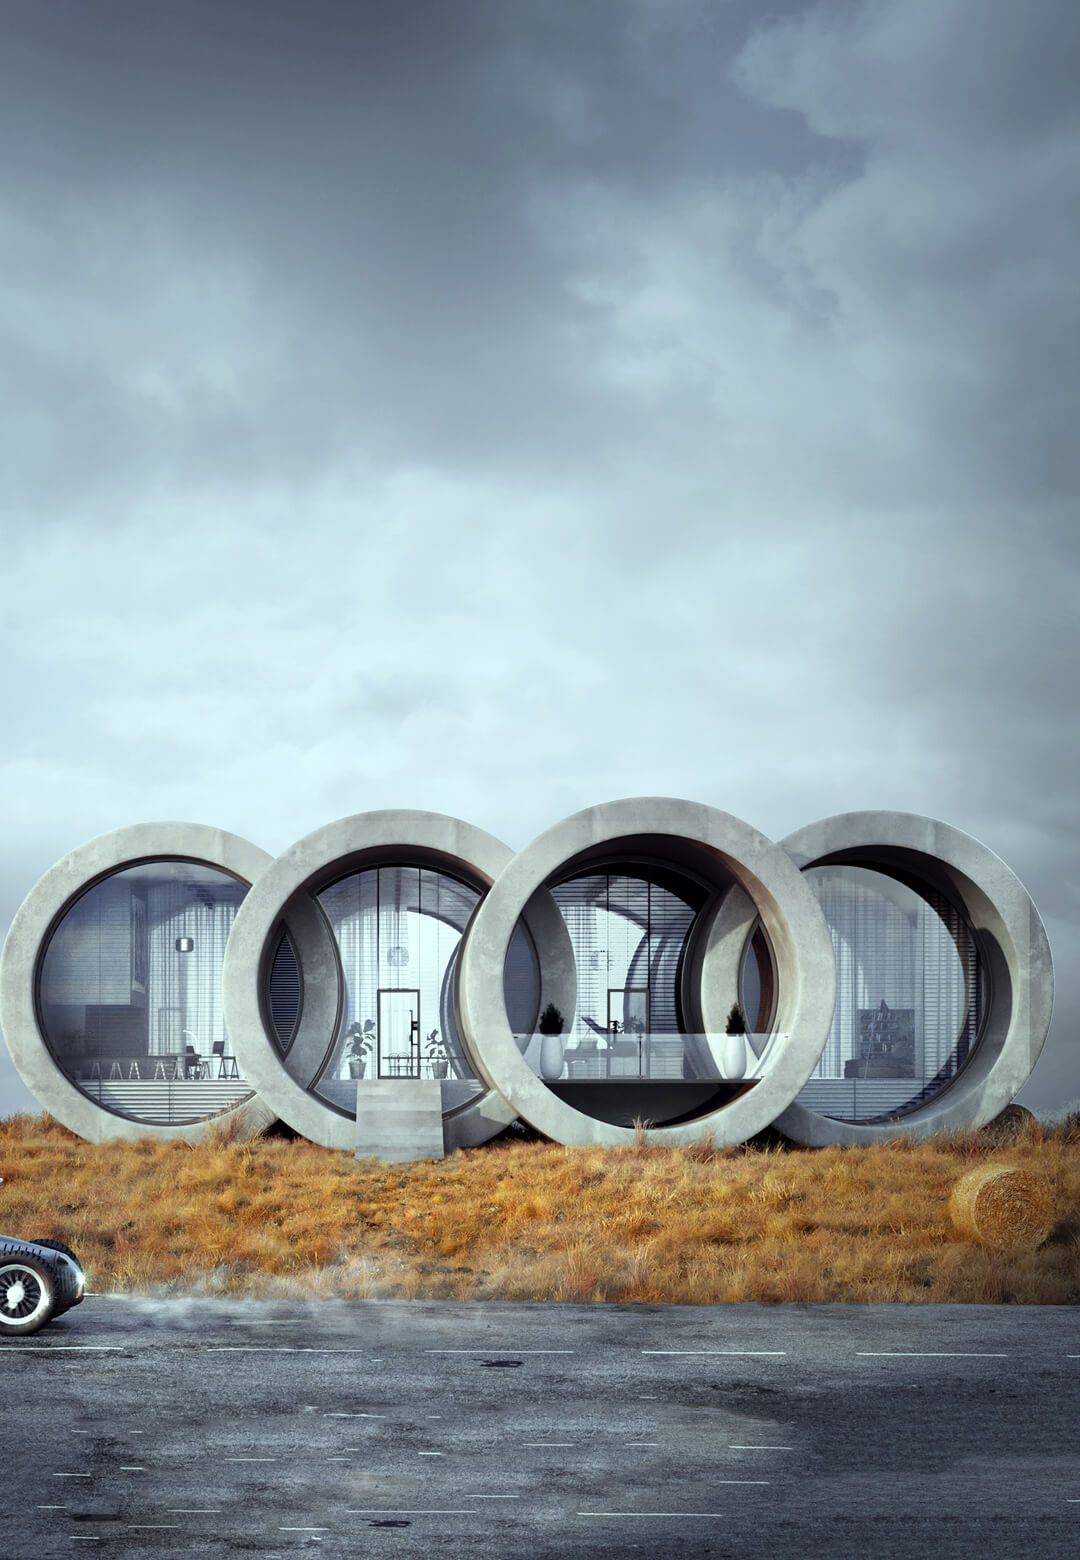 Ringhouse, a conceptual house design inspired by the Audi logo, by Polish designer Karina Wiciak | Karina Wiciak of Wamhouse Studio conceptualises house designs inspired by brand logos | STIRworld